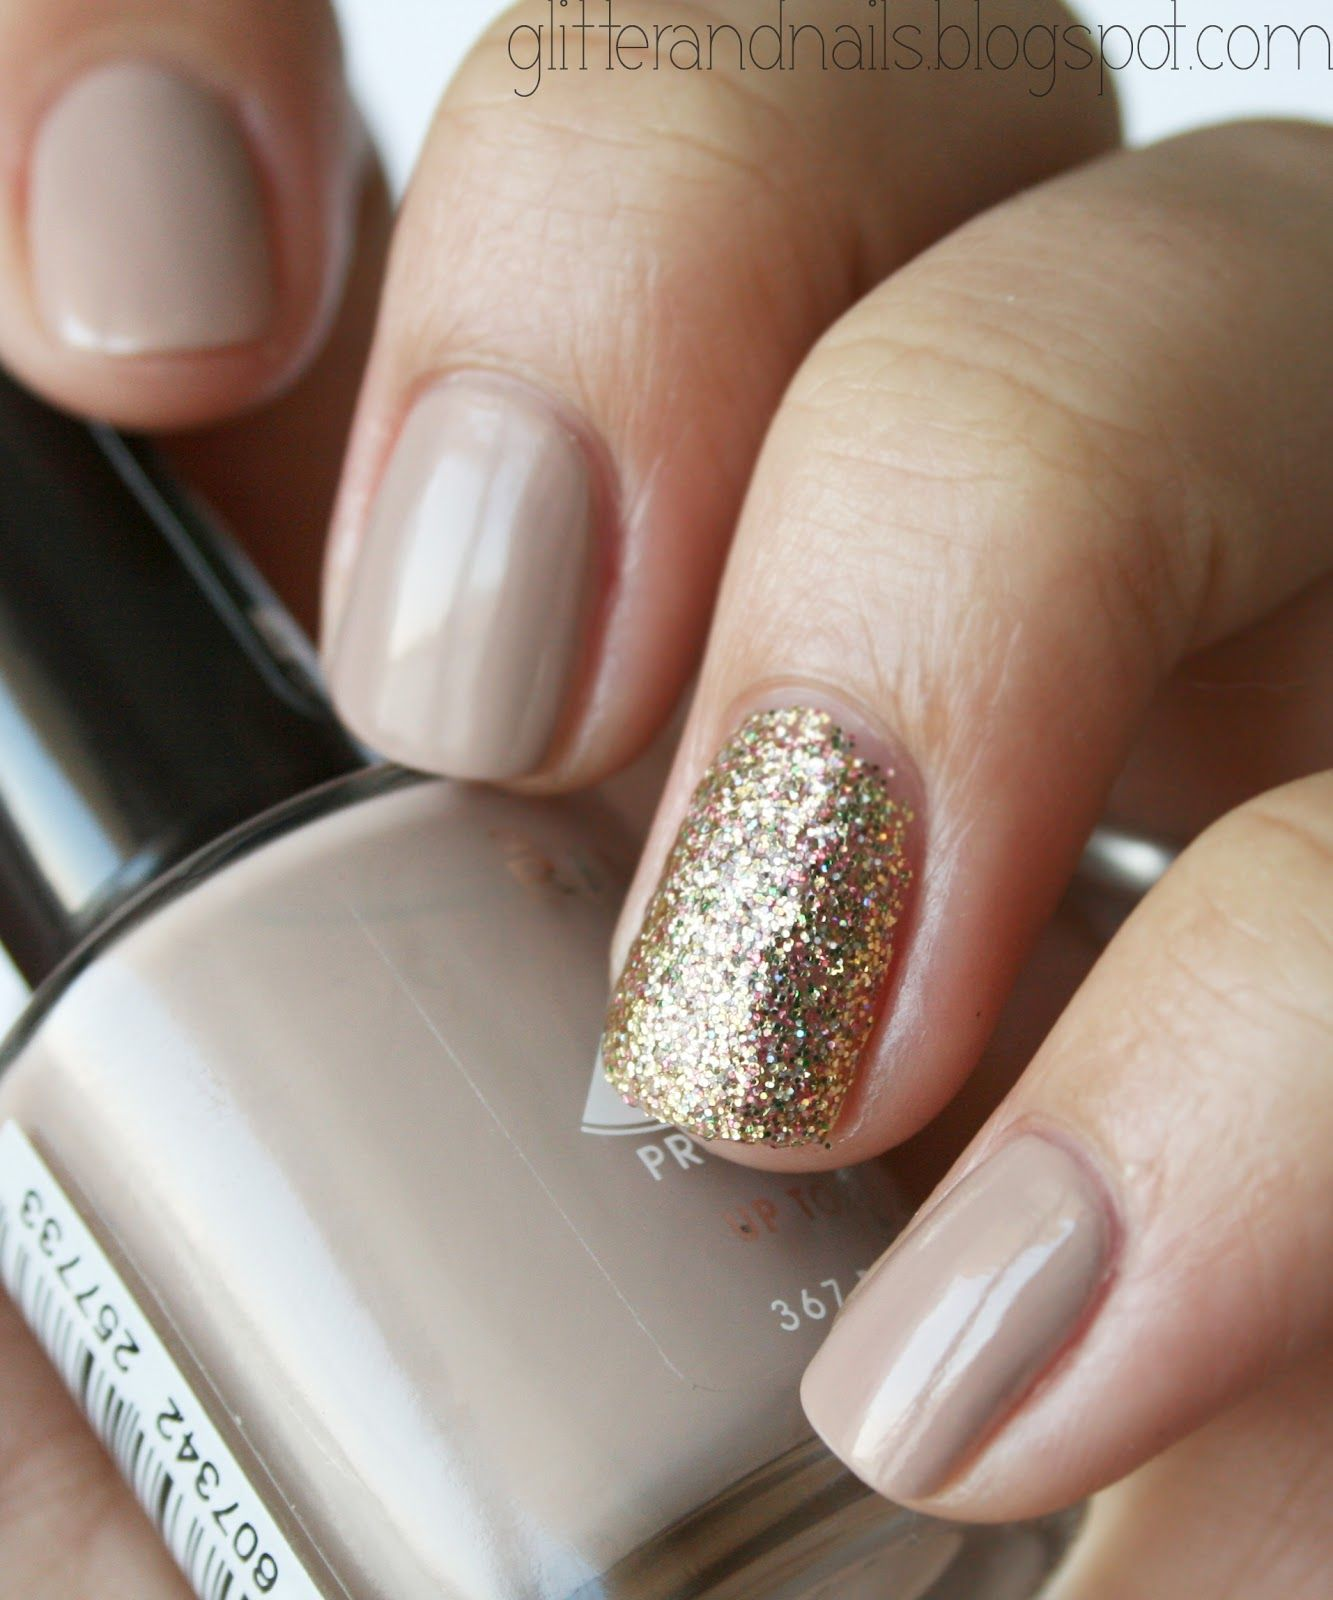 Nude with gold, glitter accent. This is literally how I just painted ...